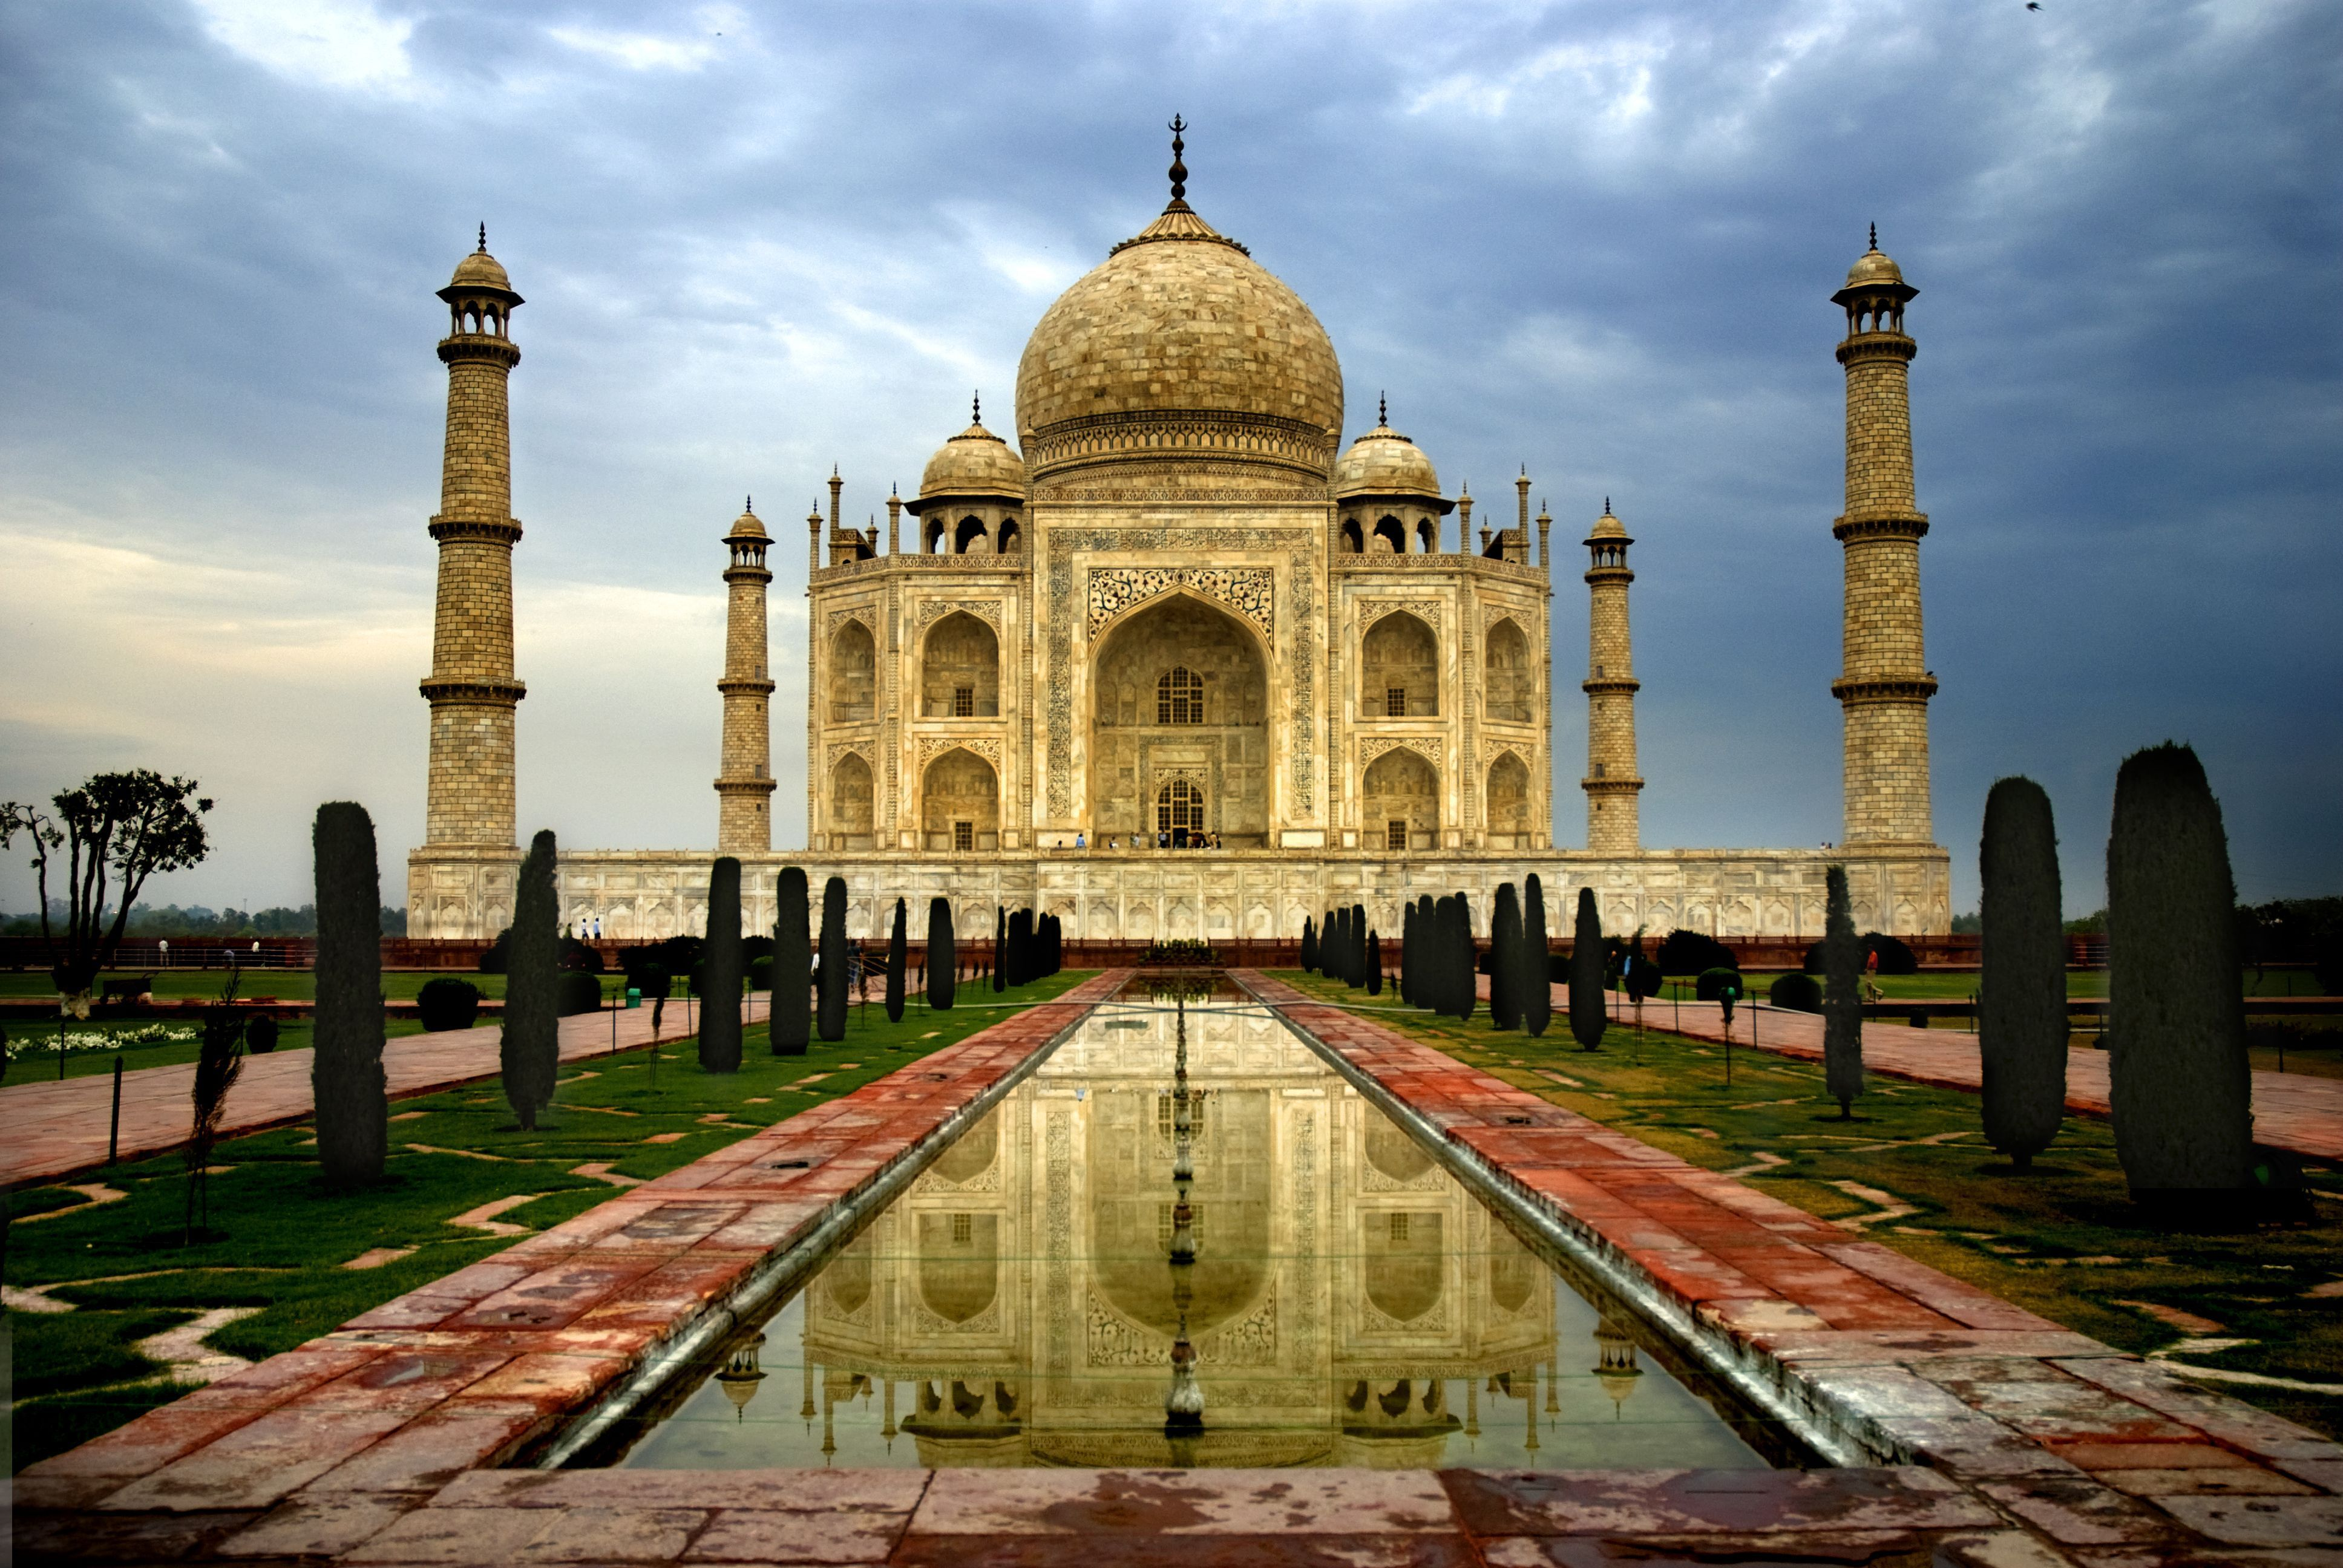 Hd wallpaper taj mahal - Hd Wallpaper Background Id 372233 3872x2592 Man Made Taj Mahal